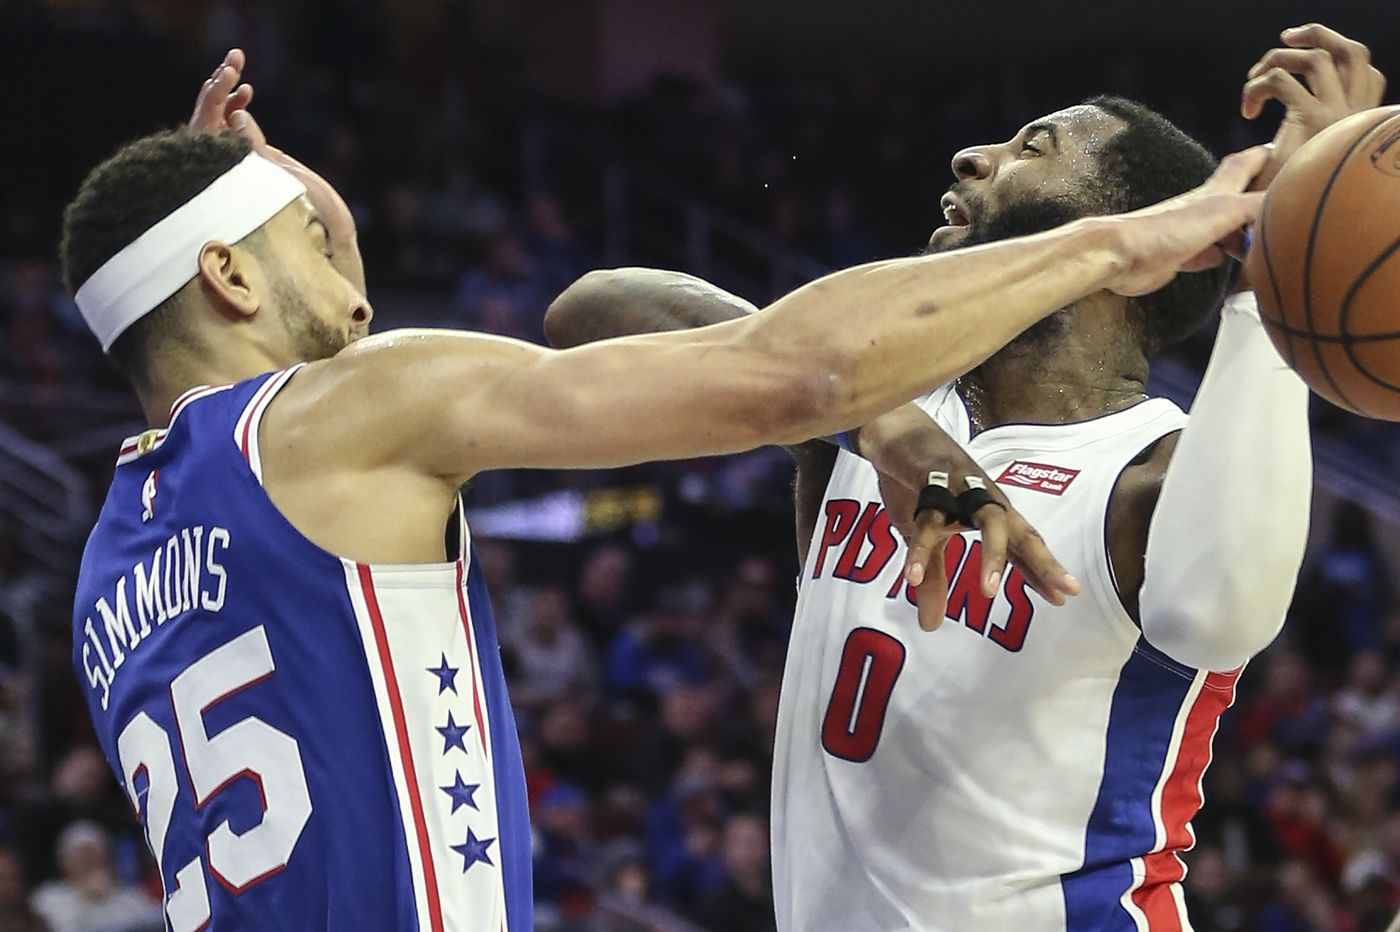 Joel Embiid, Ben Simmons lead Sixers to a 116-102 victory over Pistons after Jimmy Butler leaves game with a groin strain